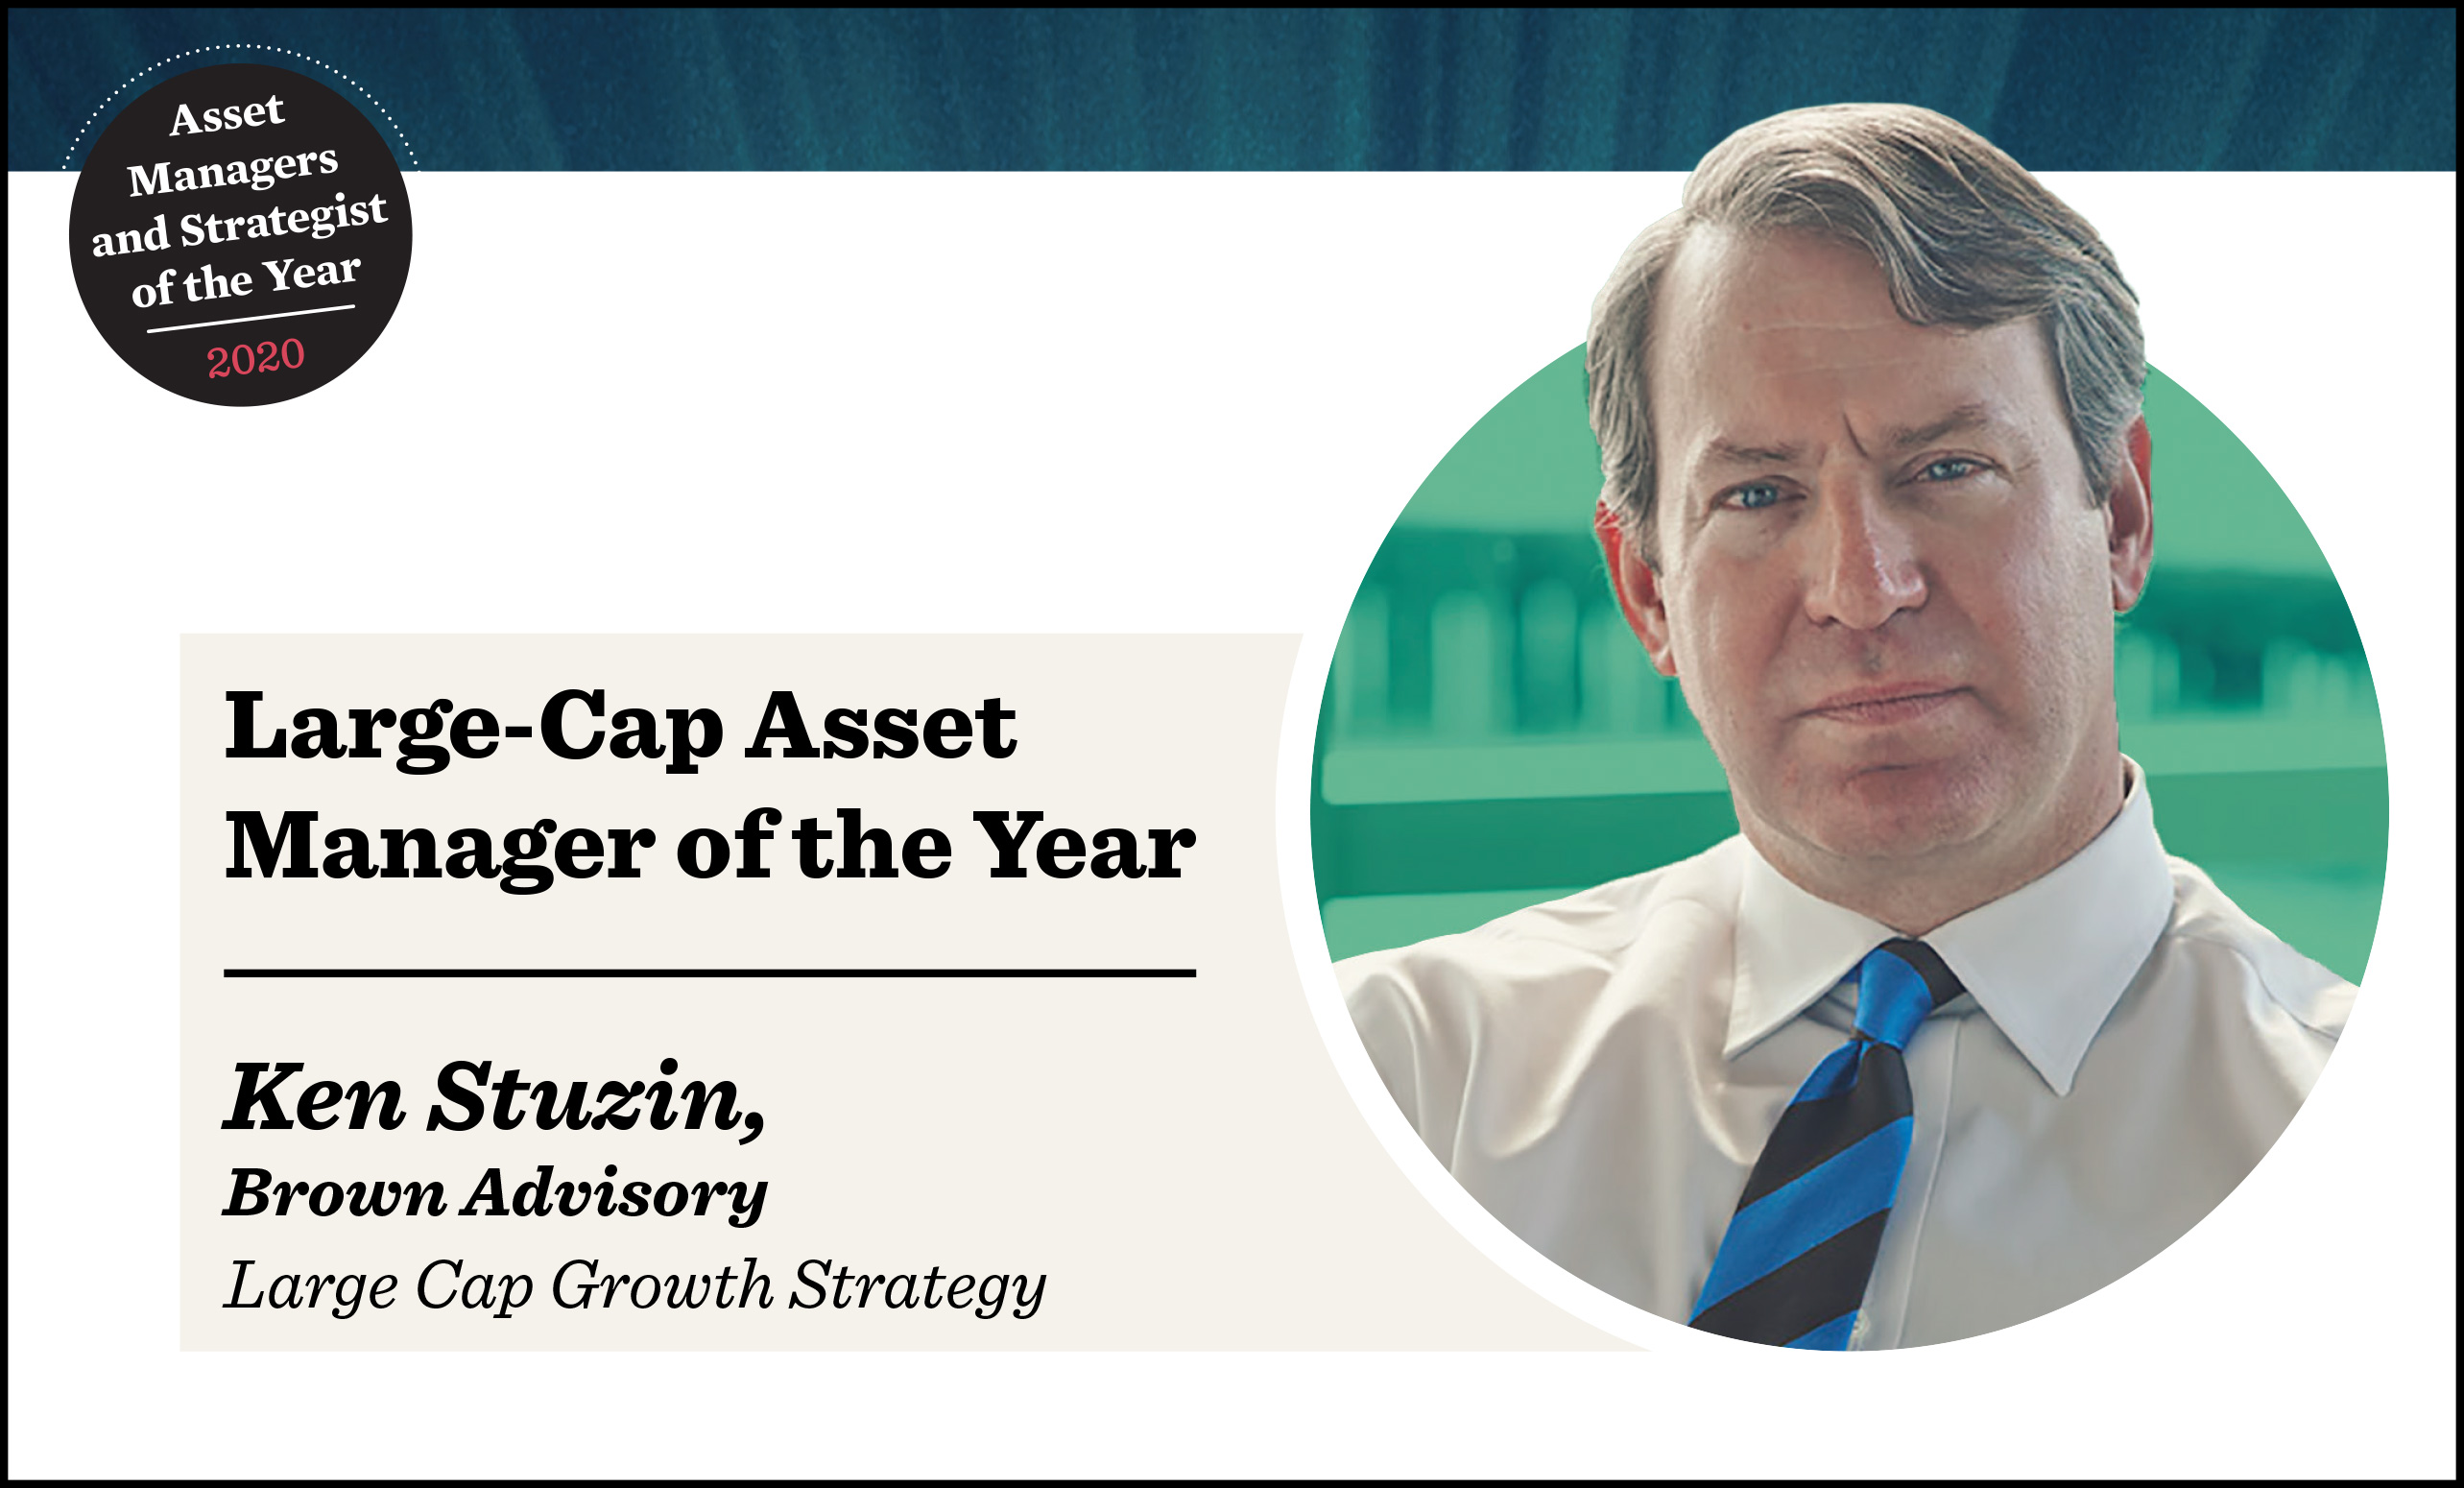 Large-Cap Equity Asset Manager of the Year: Brown Advisory